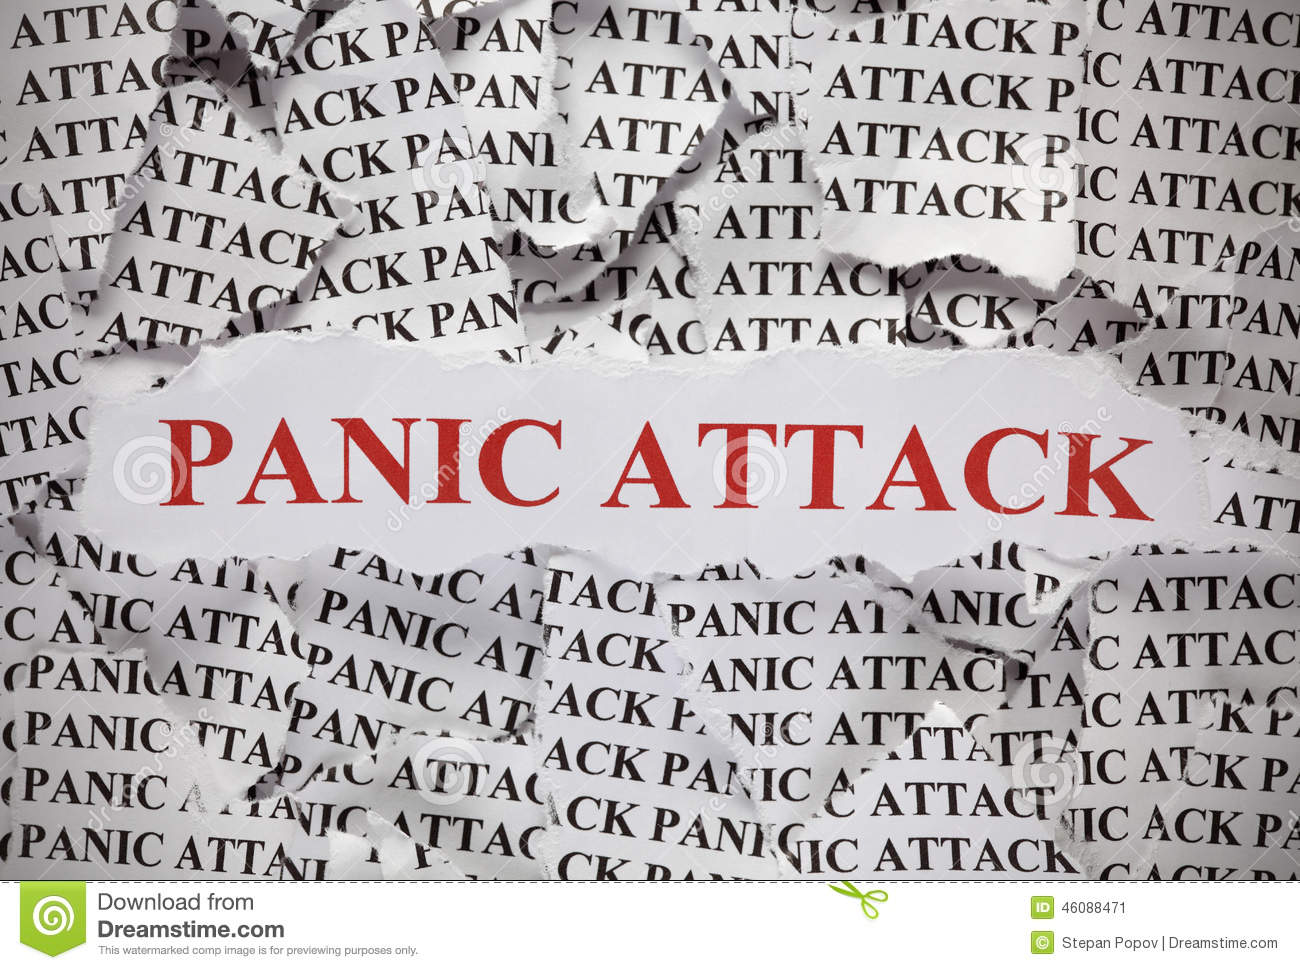 thesis panic attack Mini panic attacks bandella  never mind the fact that my thesis has nothing whatsoever to do with the book i was reading i started obsessing and then all of a sudden here came the racing thoughts that kept spiraling from bad to worse scenarios, and i couldn't get it to stop i started shaking and feeling like my heart was speeding up.